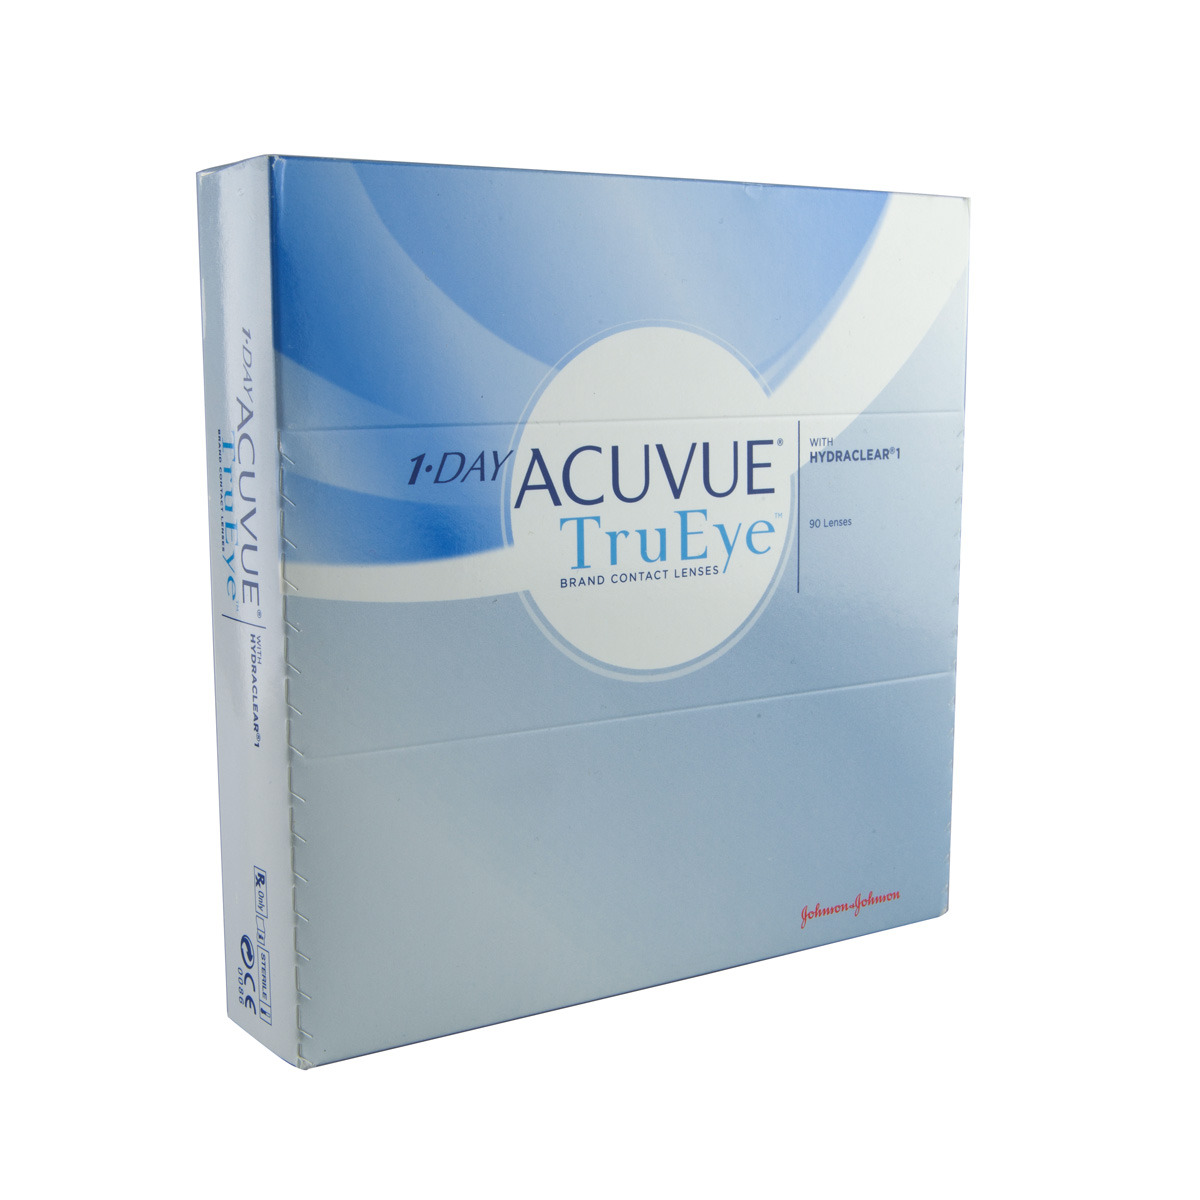 1 Day Acuvue TruEye (90 lenses)